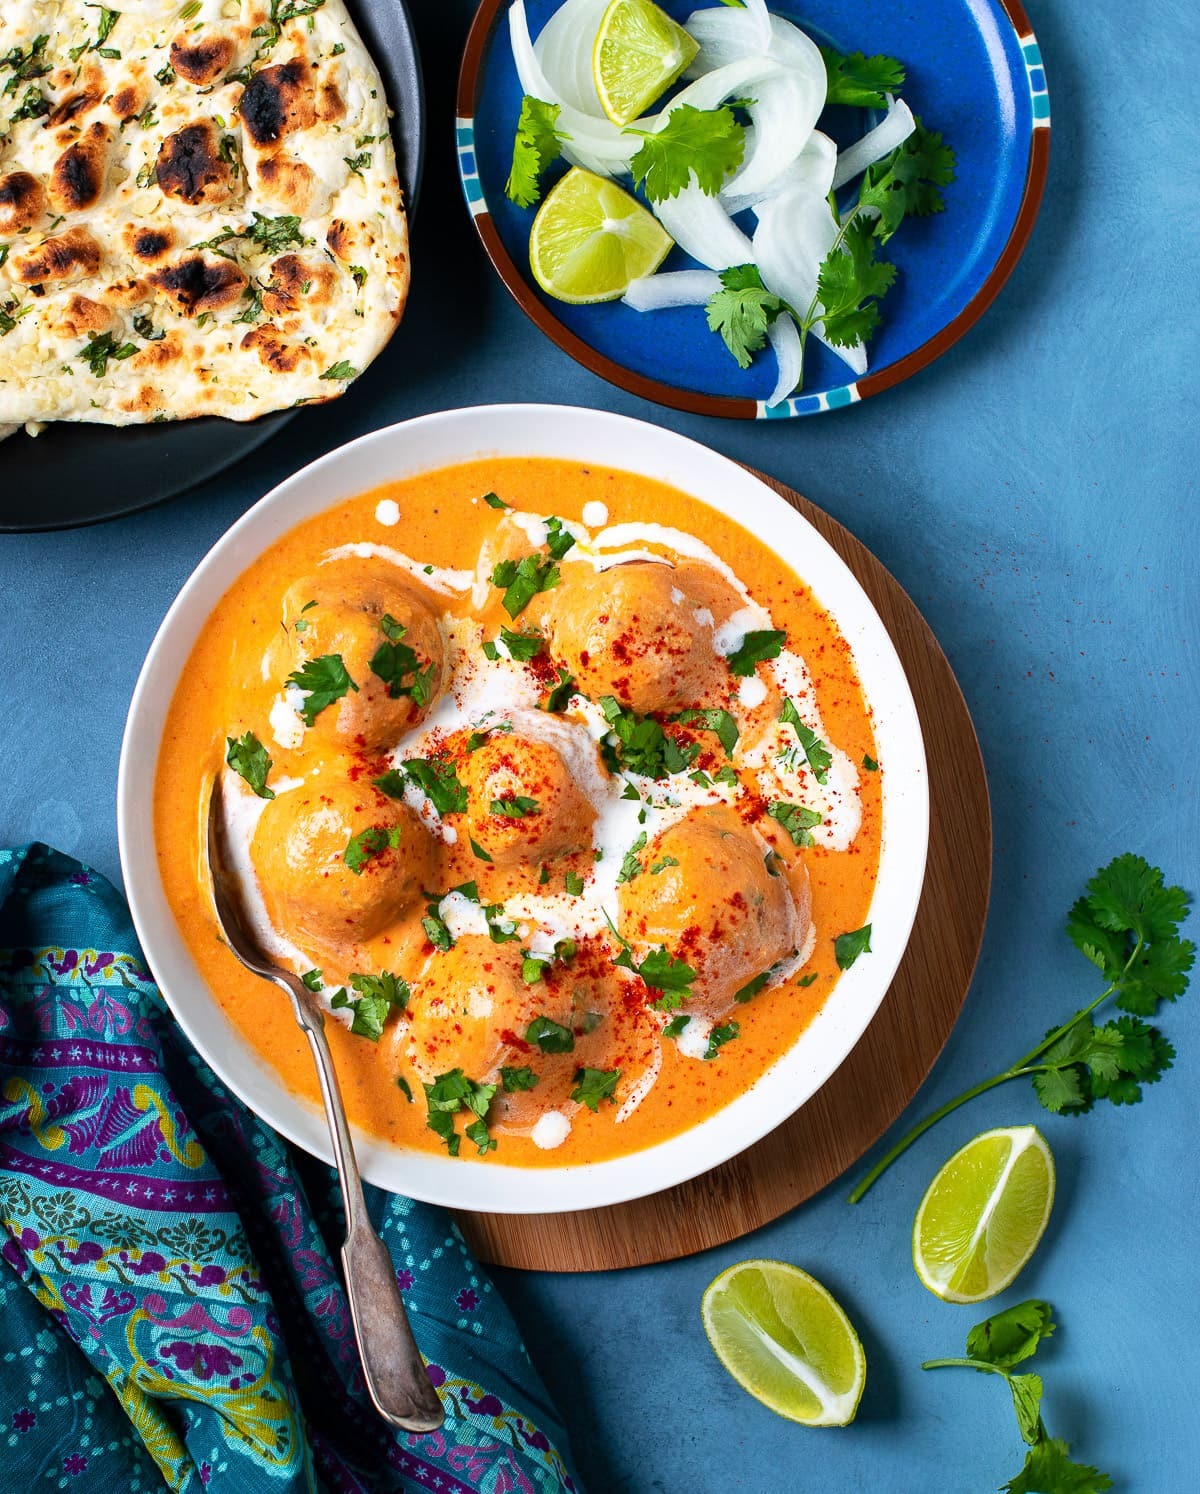 Malai Kofta curry ready to be served with a spoon